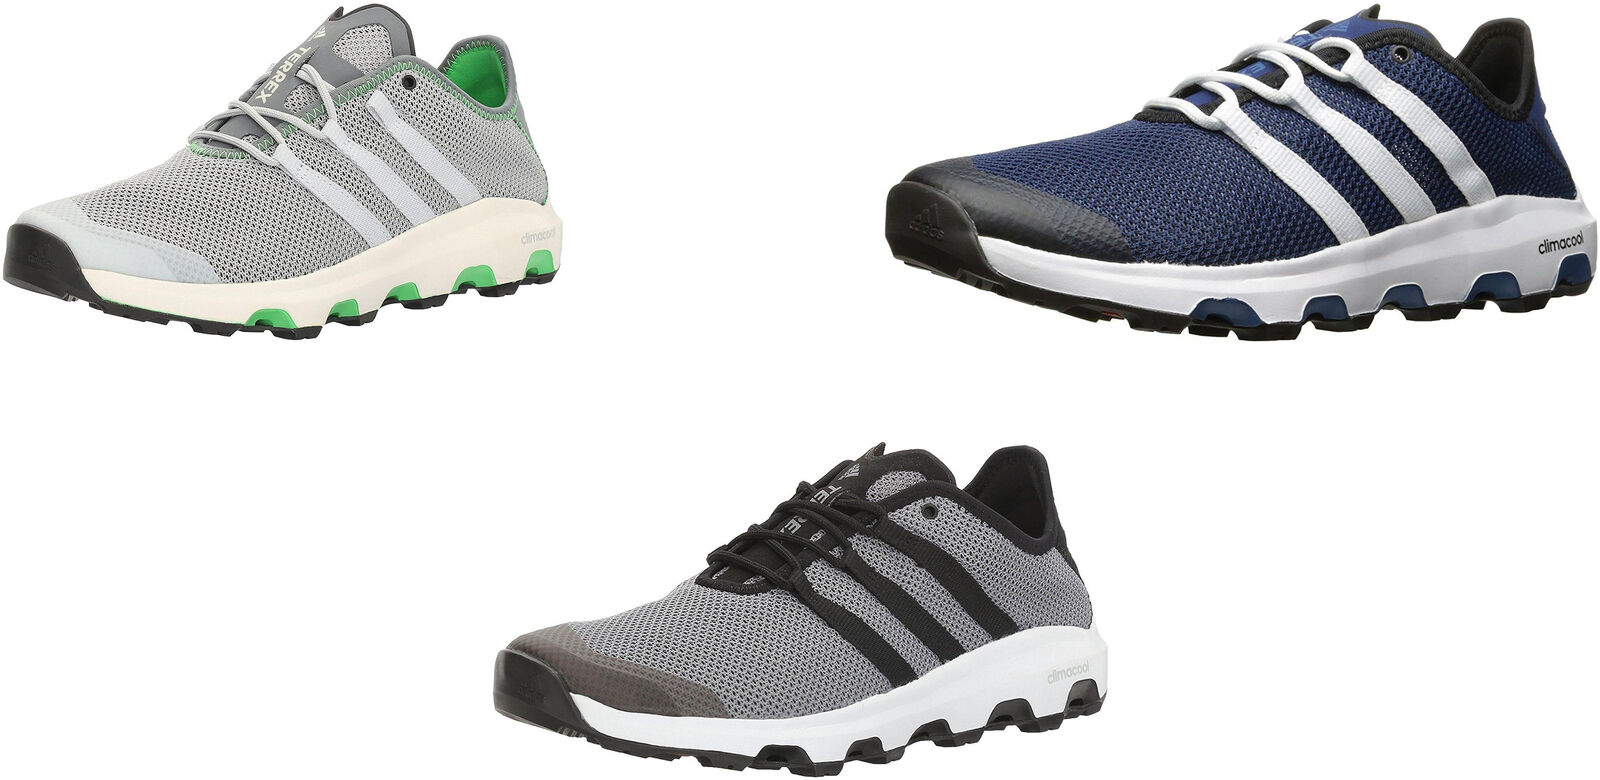 Adidas outdoor Men's Terrex Climacool Voyager Water shoes, 3 colors